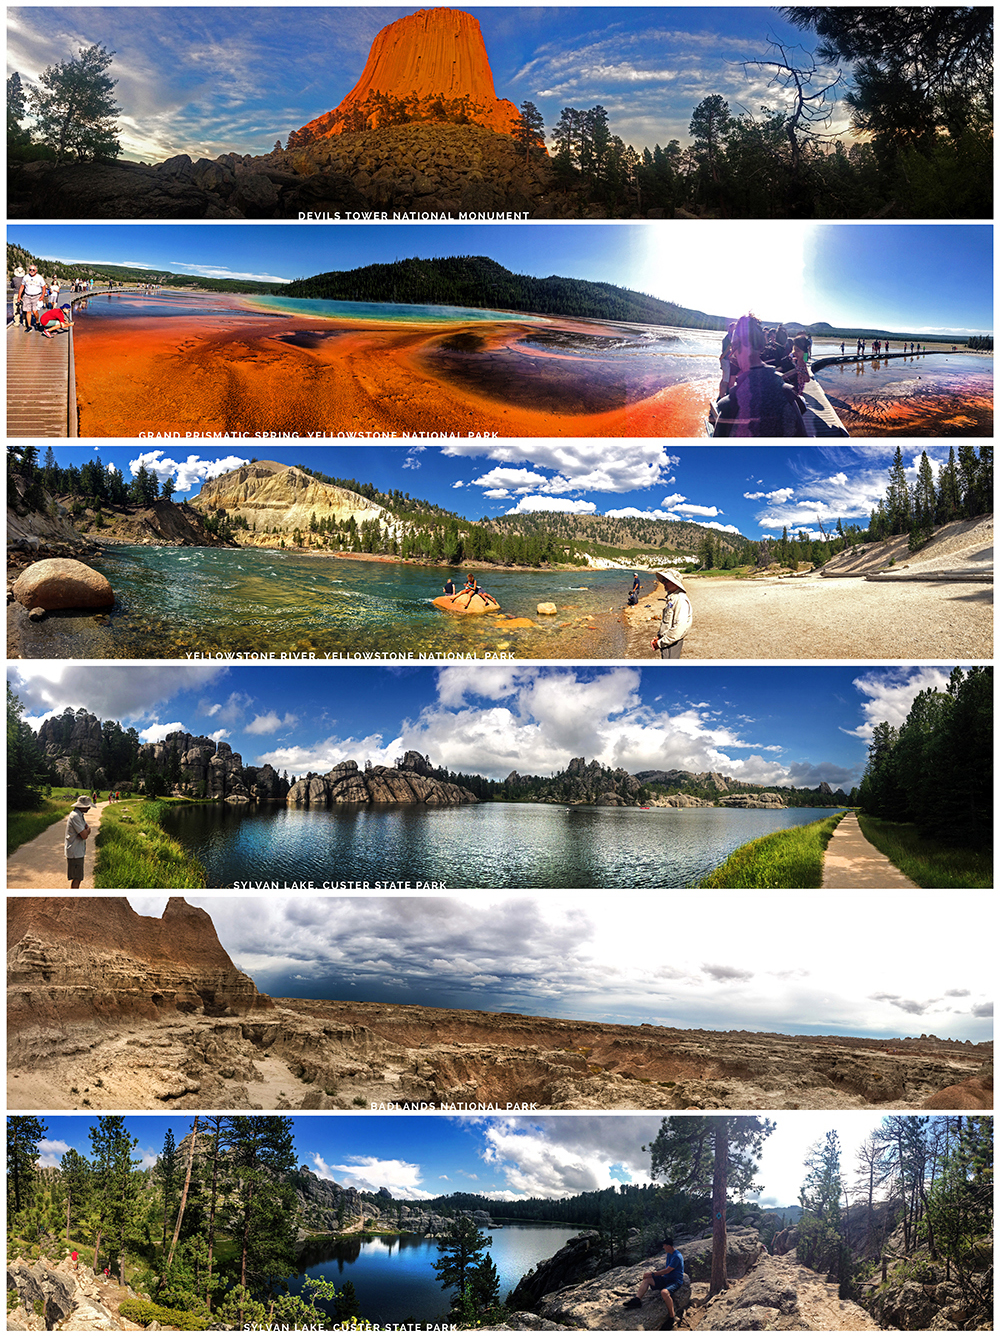 American Southwest 2016 Panorama Poster_01_02